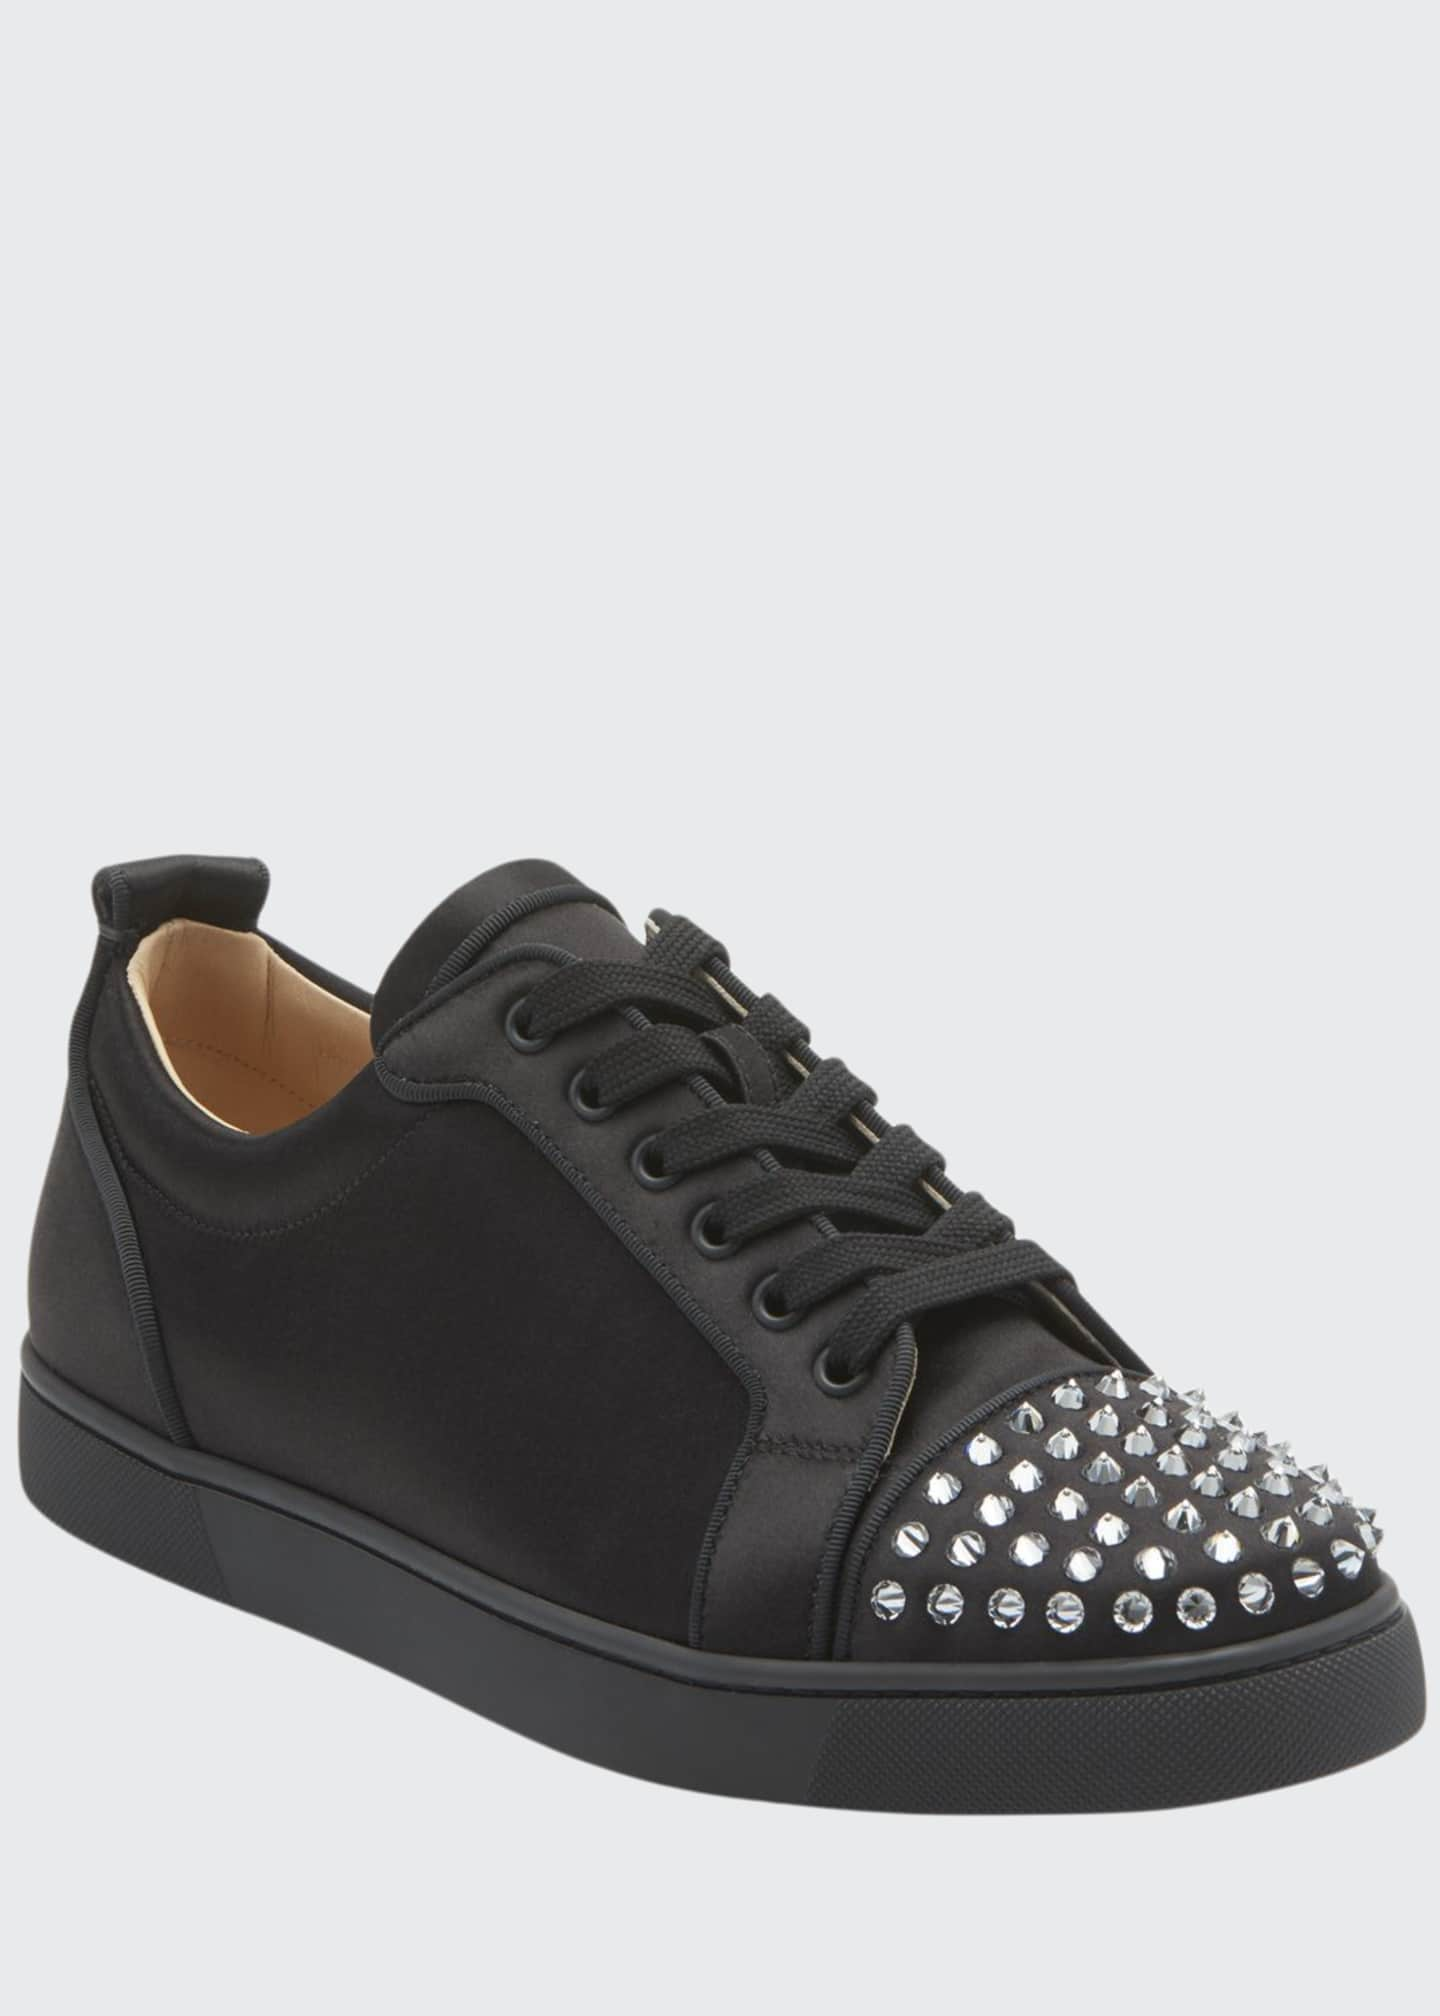 Christian Louboutin Men's Louis Junior Spikes Red Sole